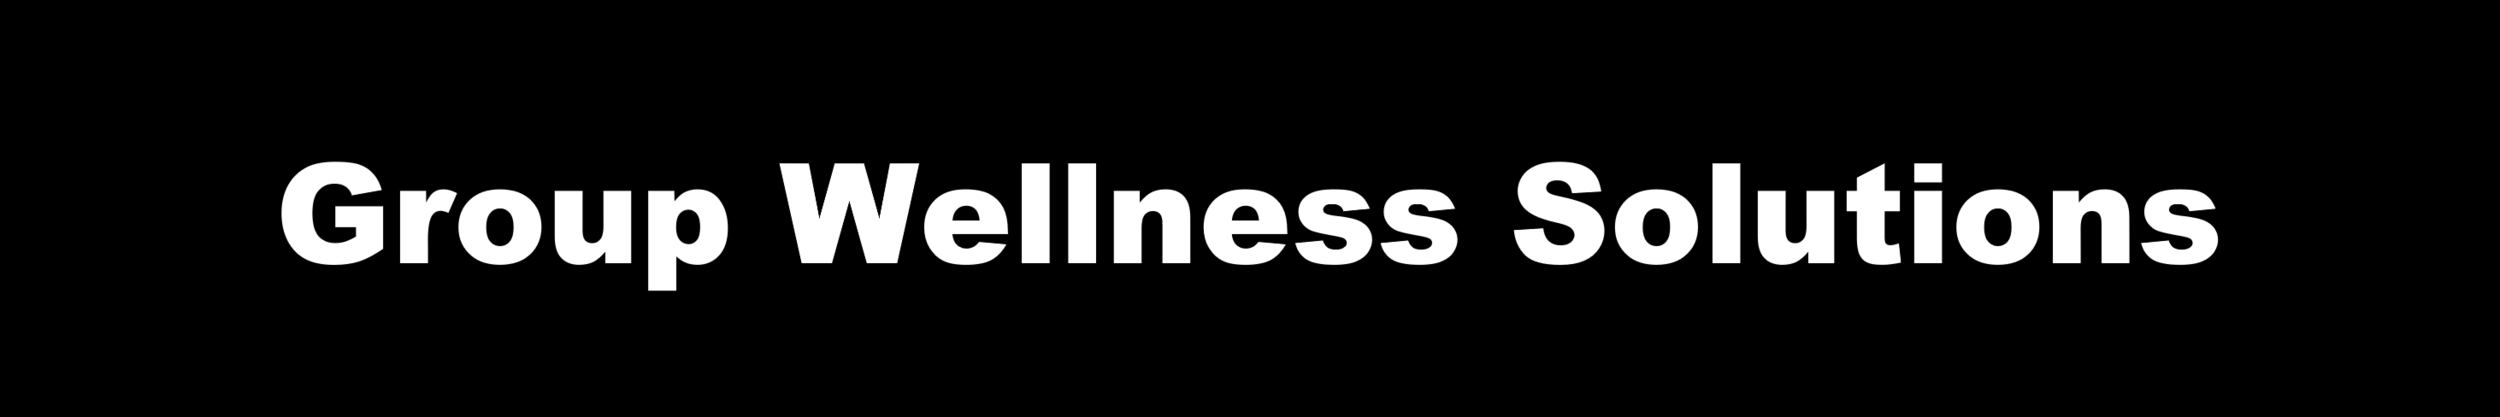 Group Wellness Solutions- Banner graphic.PNG